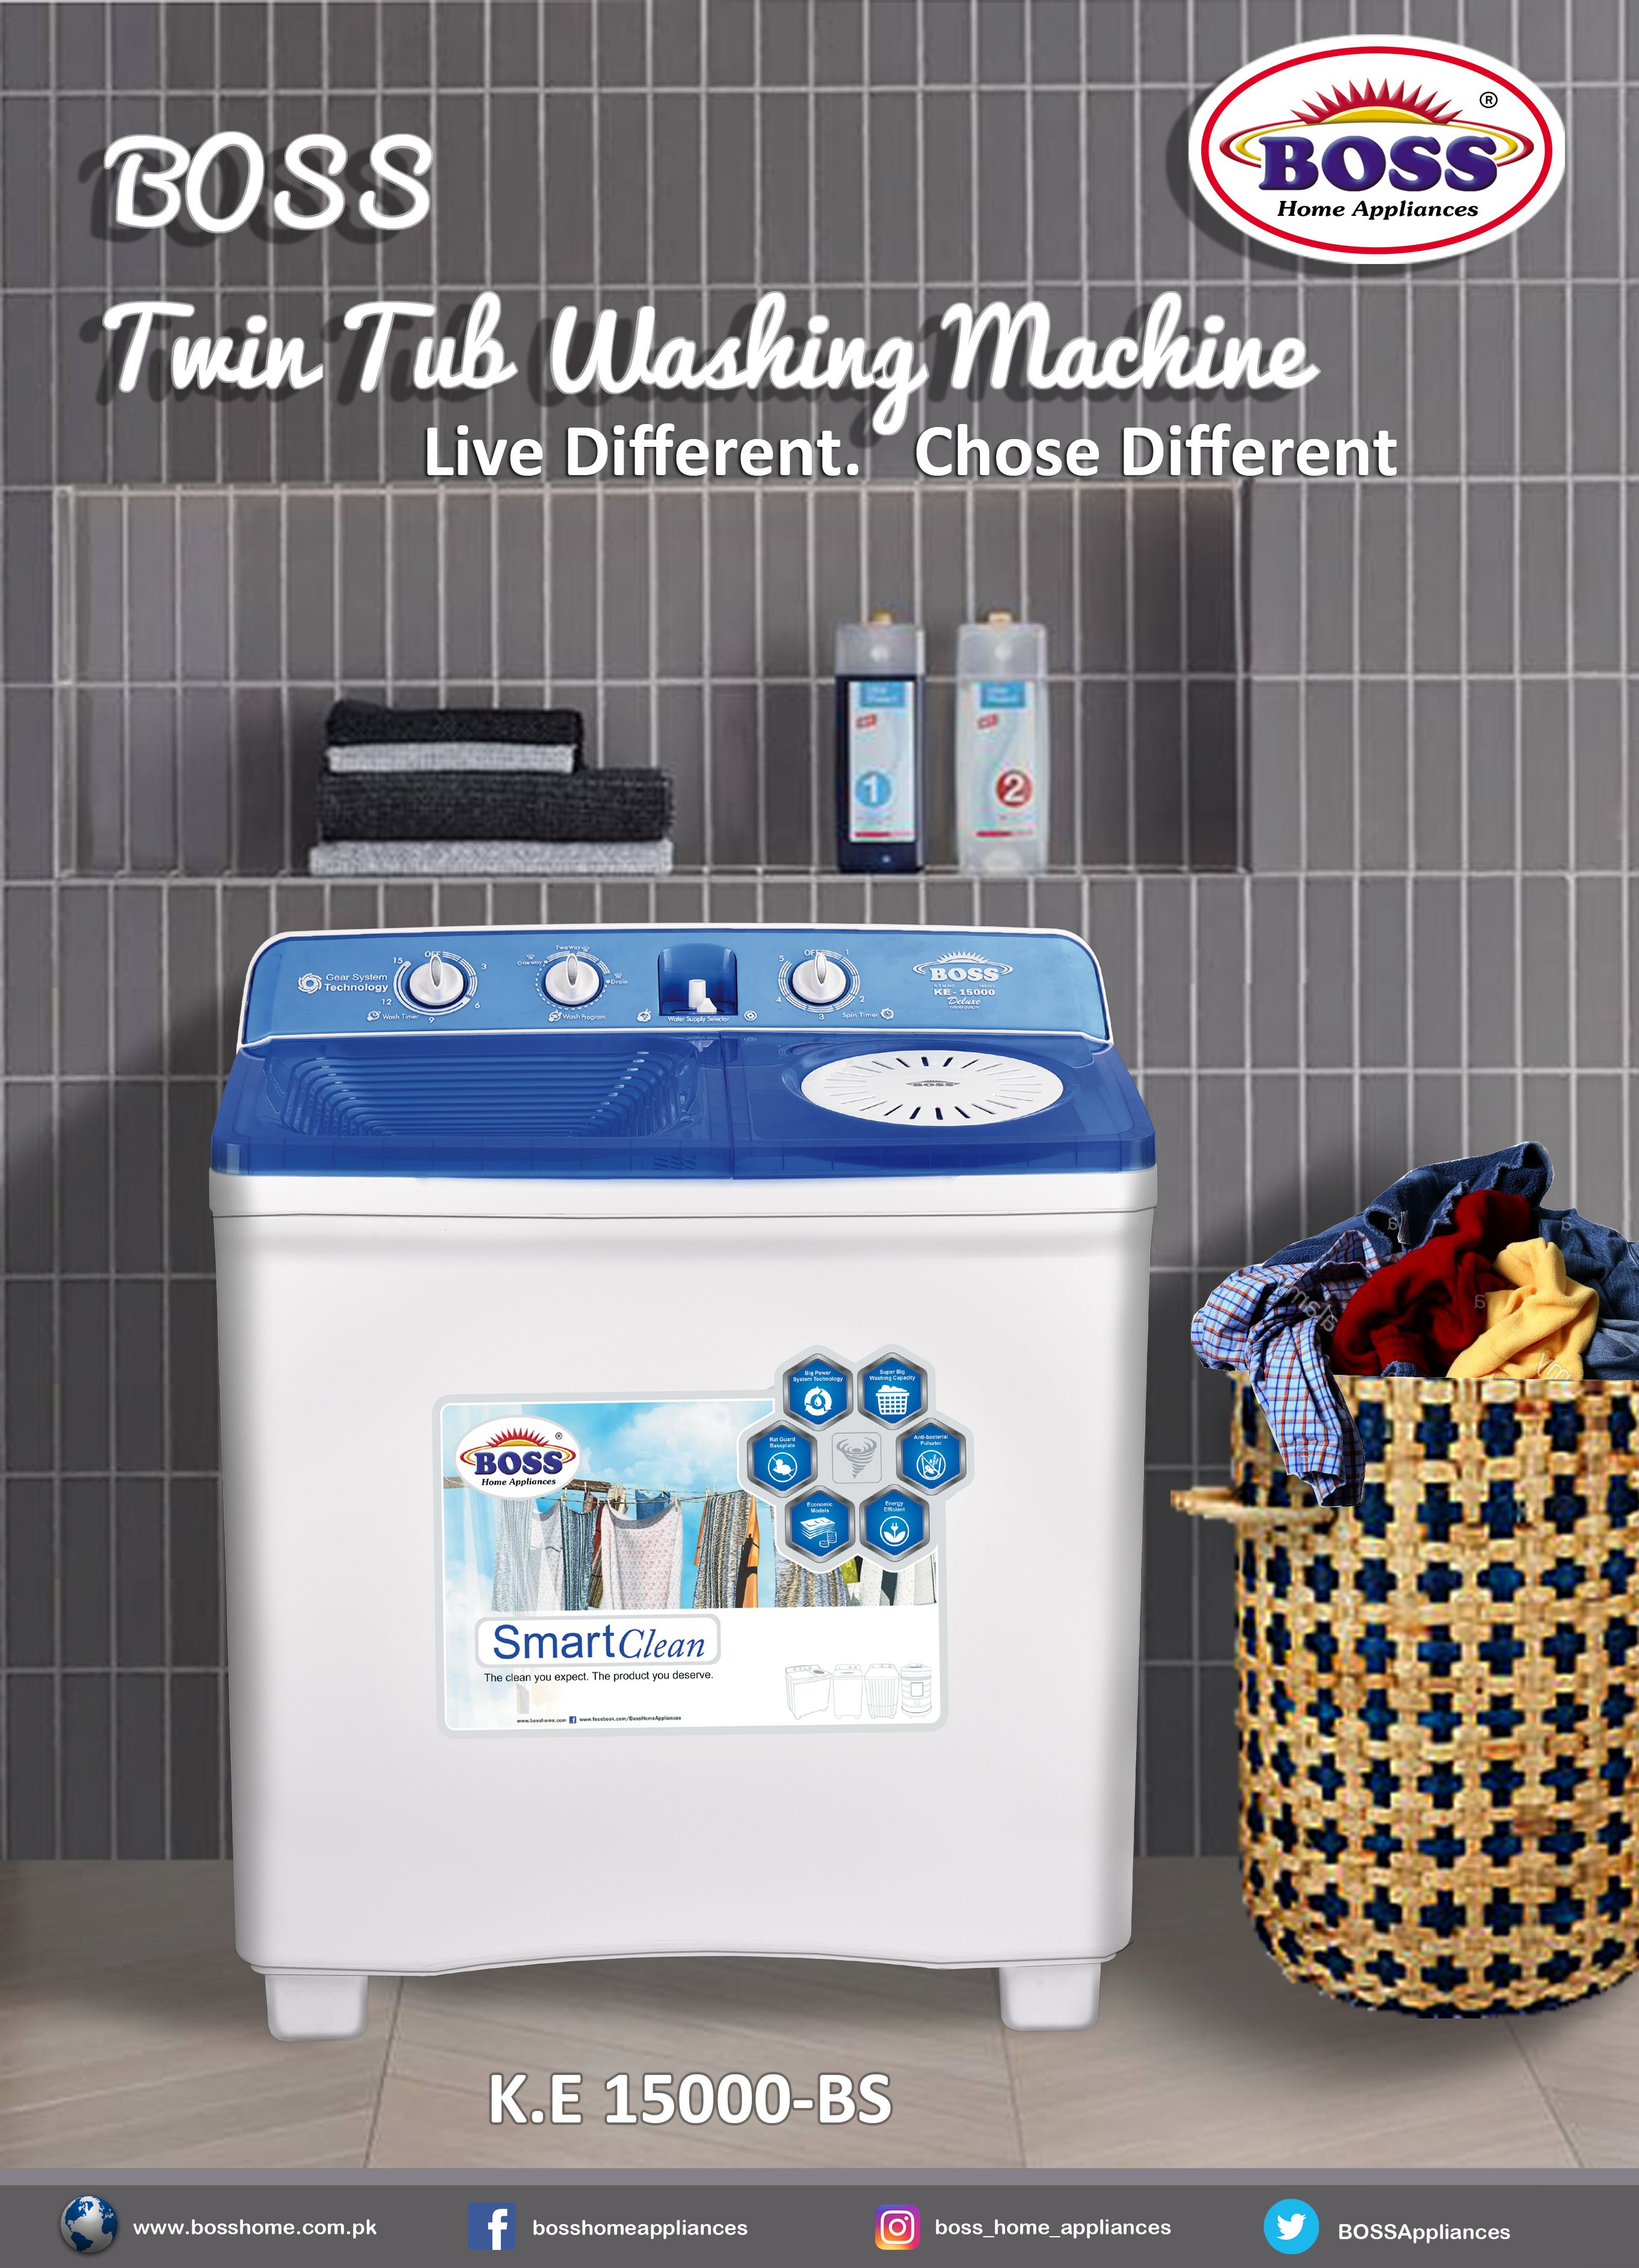 Pin By Boss Home Appliances On Products Home Appliances Twin Tub Washing Machine